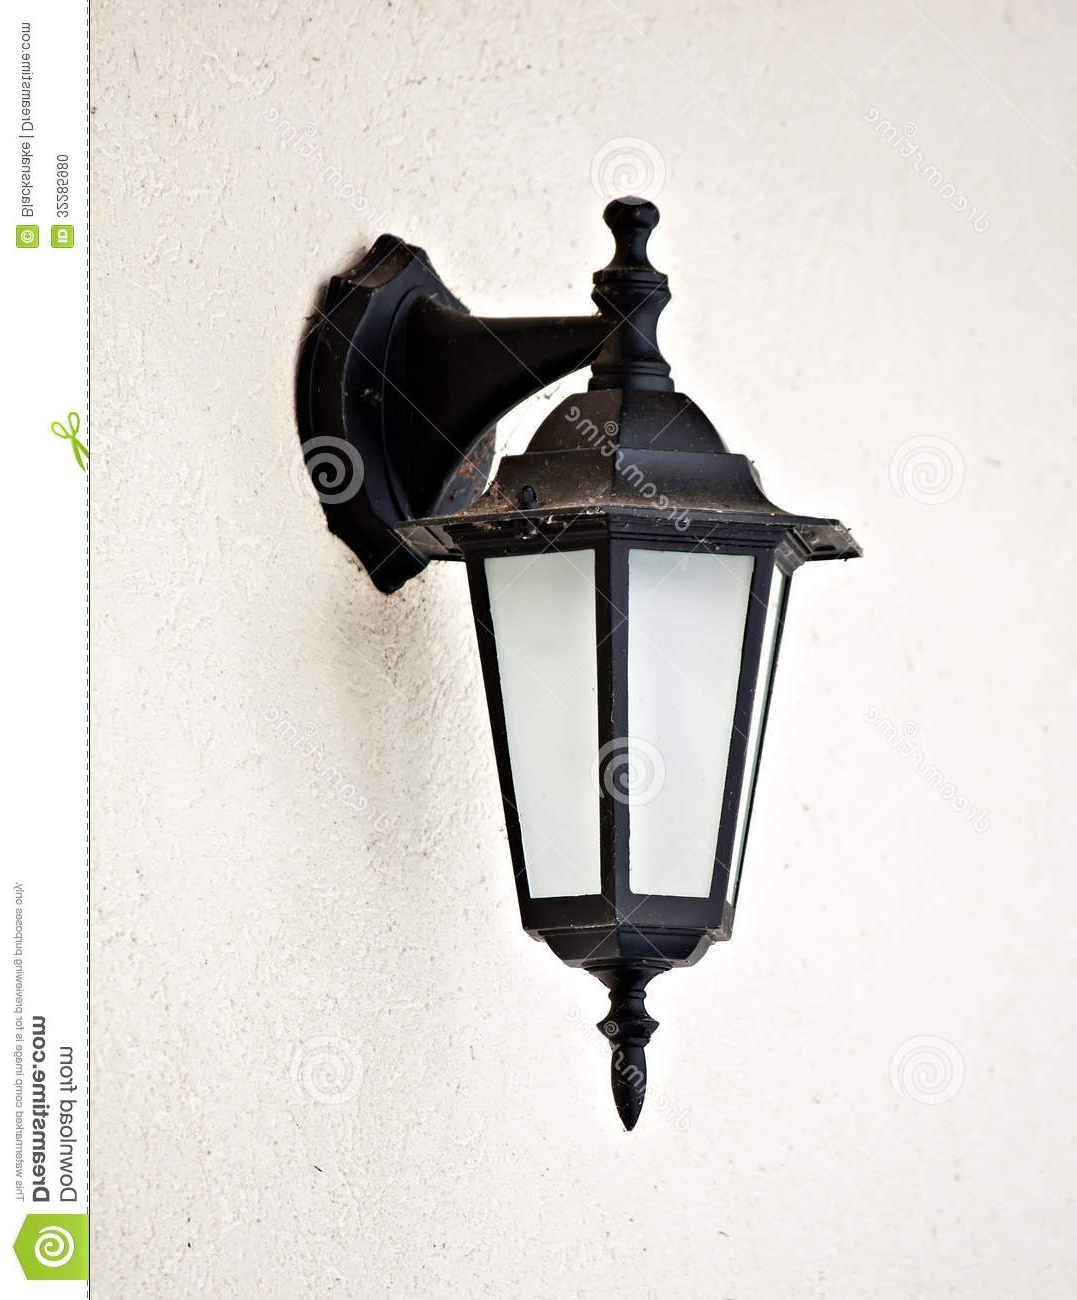 Popular Vintage Outdoor Lanterns In Old Vintage Outdoor Lantern Wall Hanging Lamp Stock Photo, Lamps (Gallery 3 of 20)